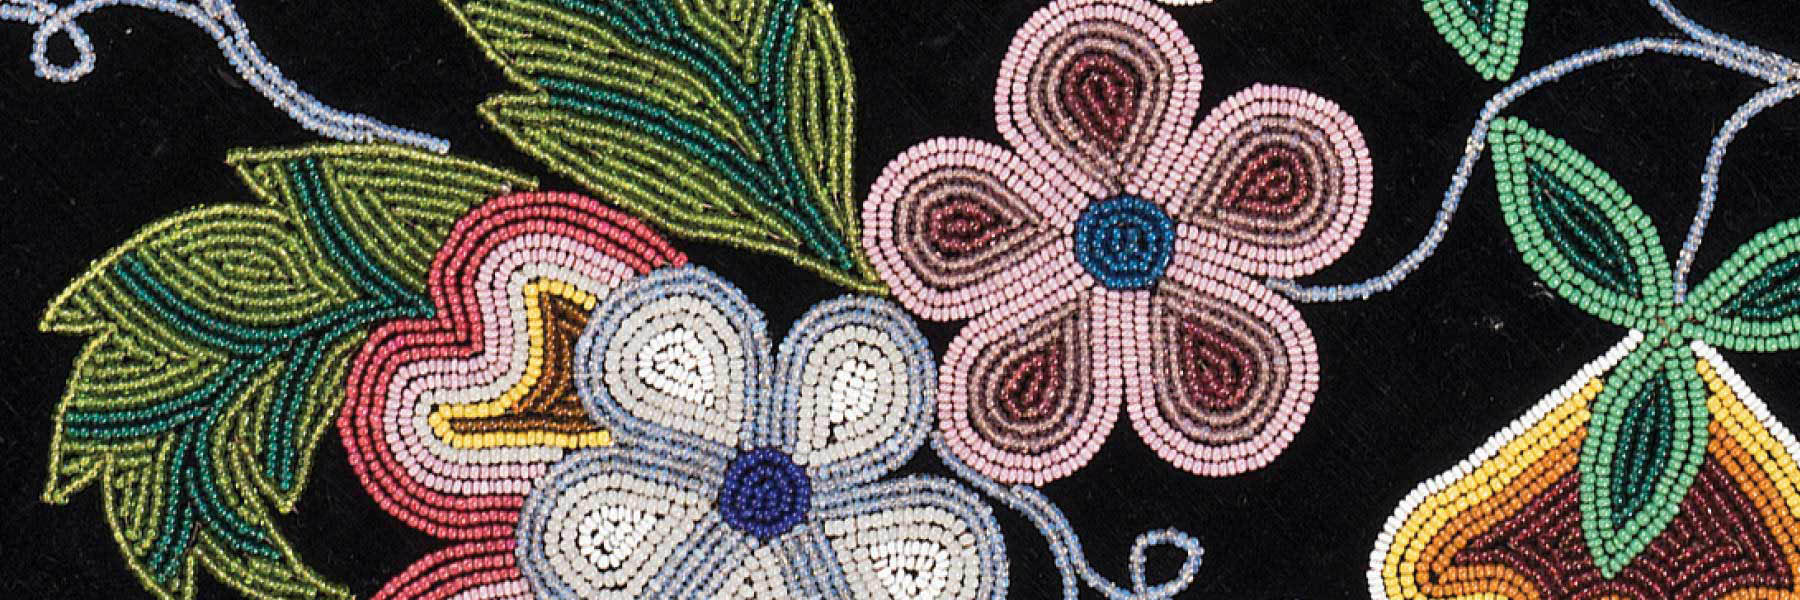 Flower beadwork on black fabric.